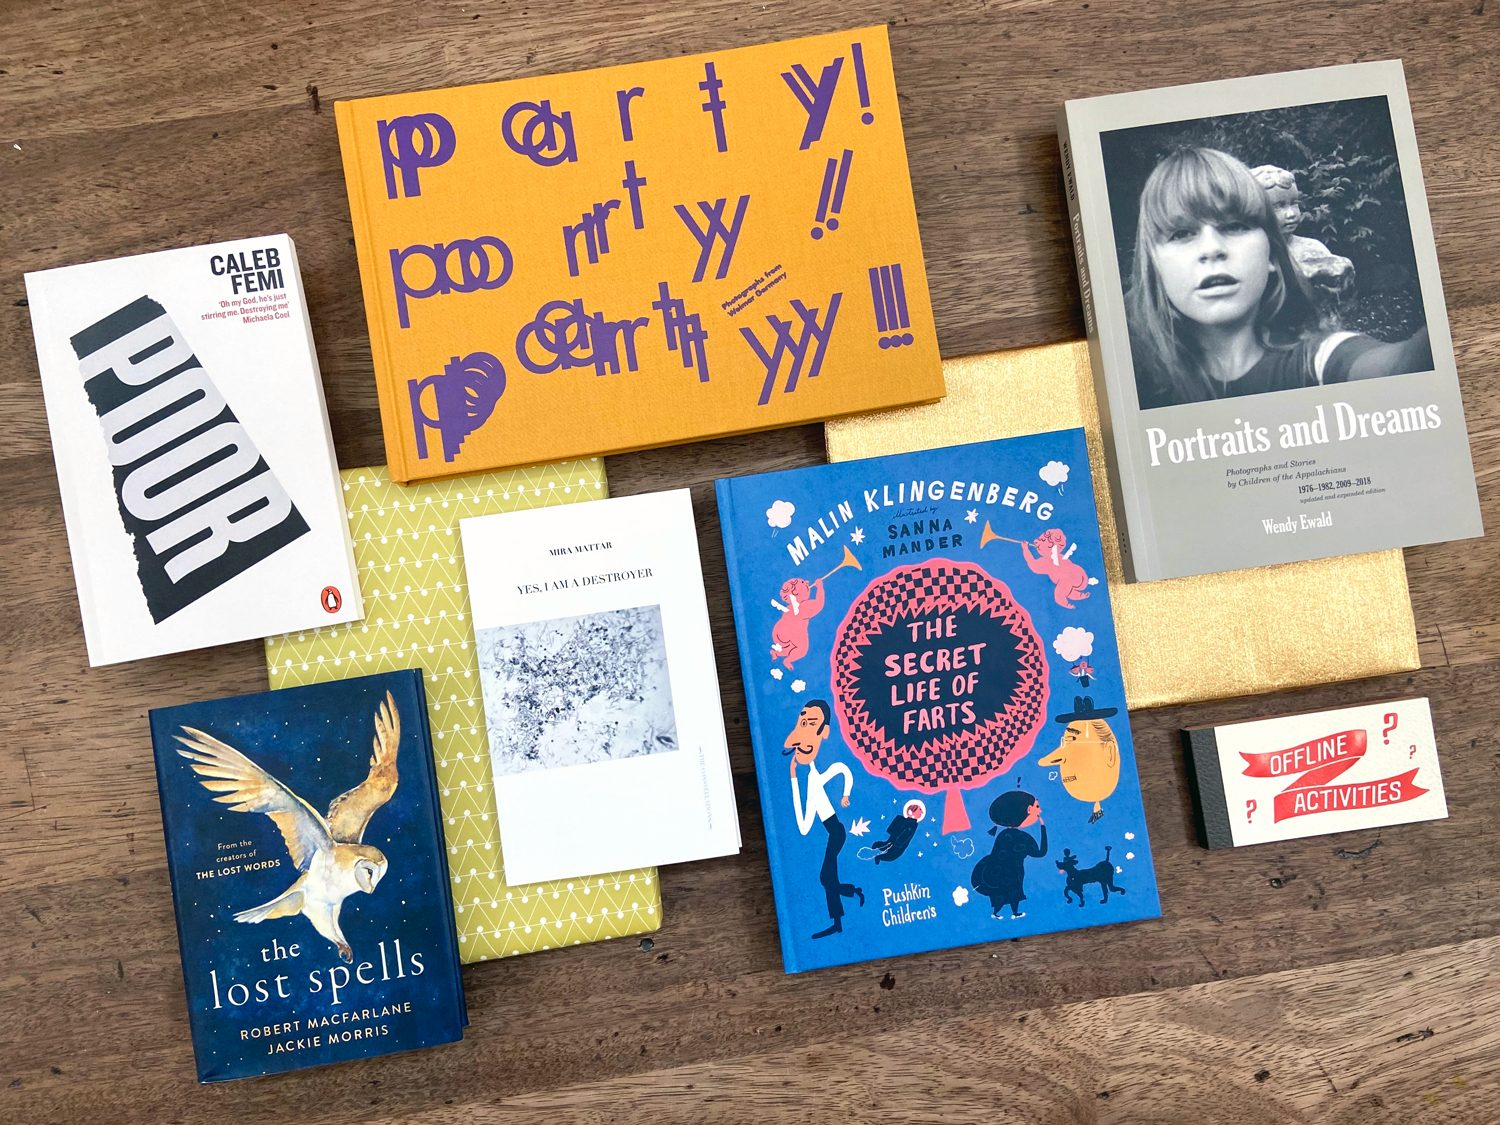 A selection of books from Phoebe's list